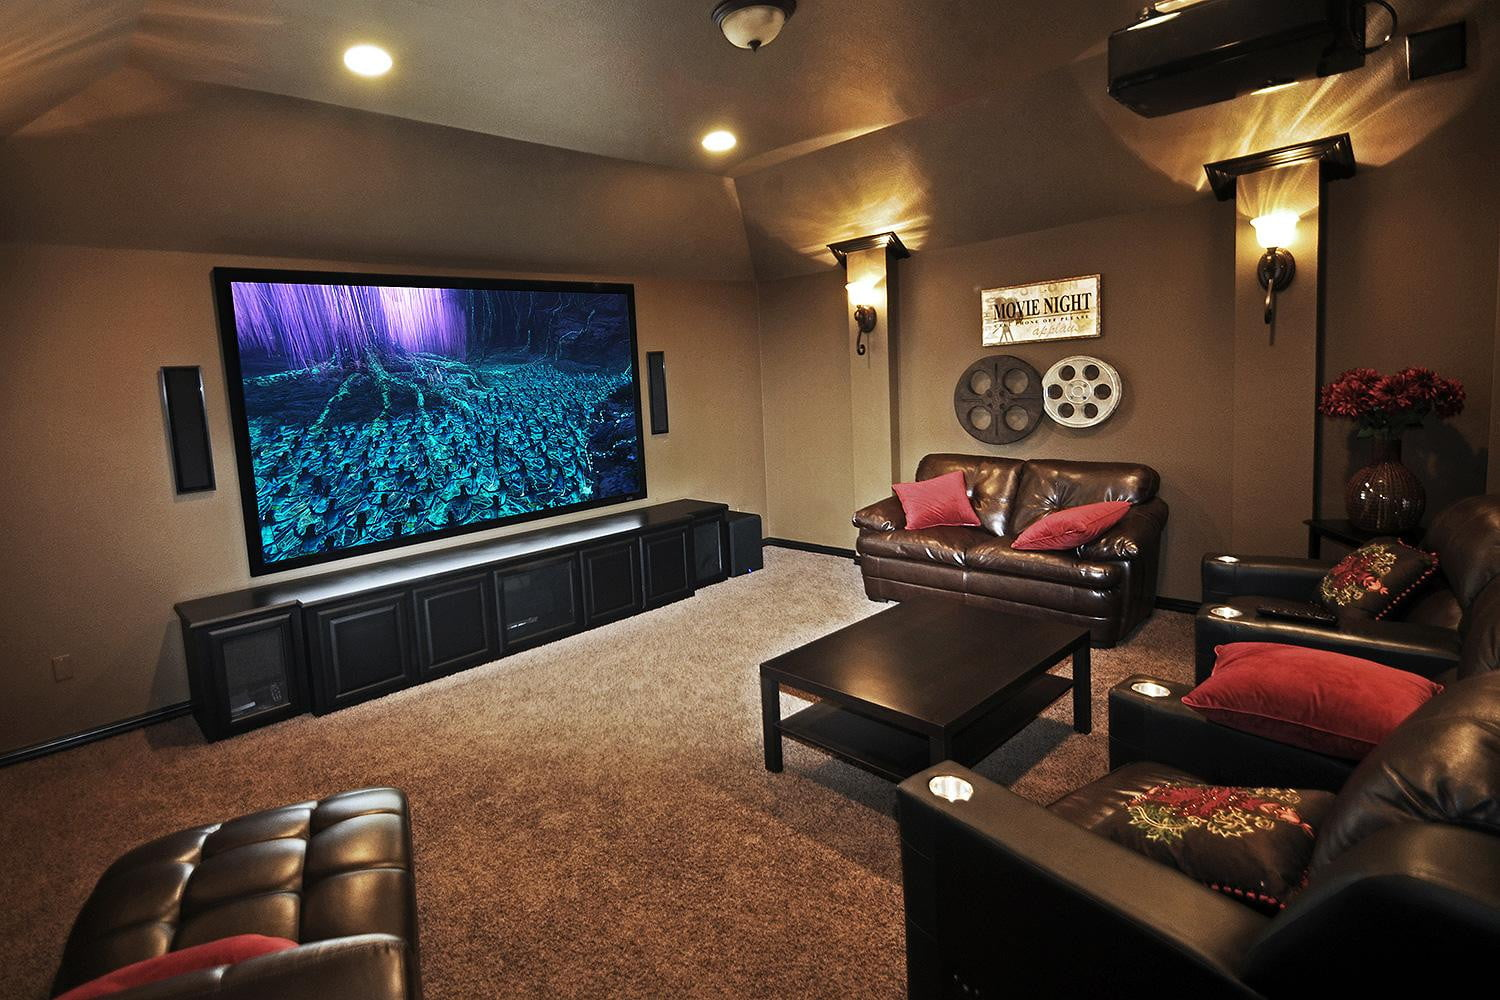 How To Build A D Home Theater For Digital Trends - Home movie room